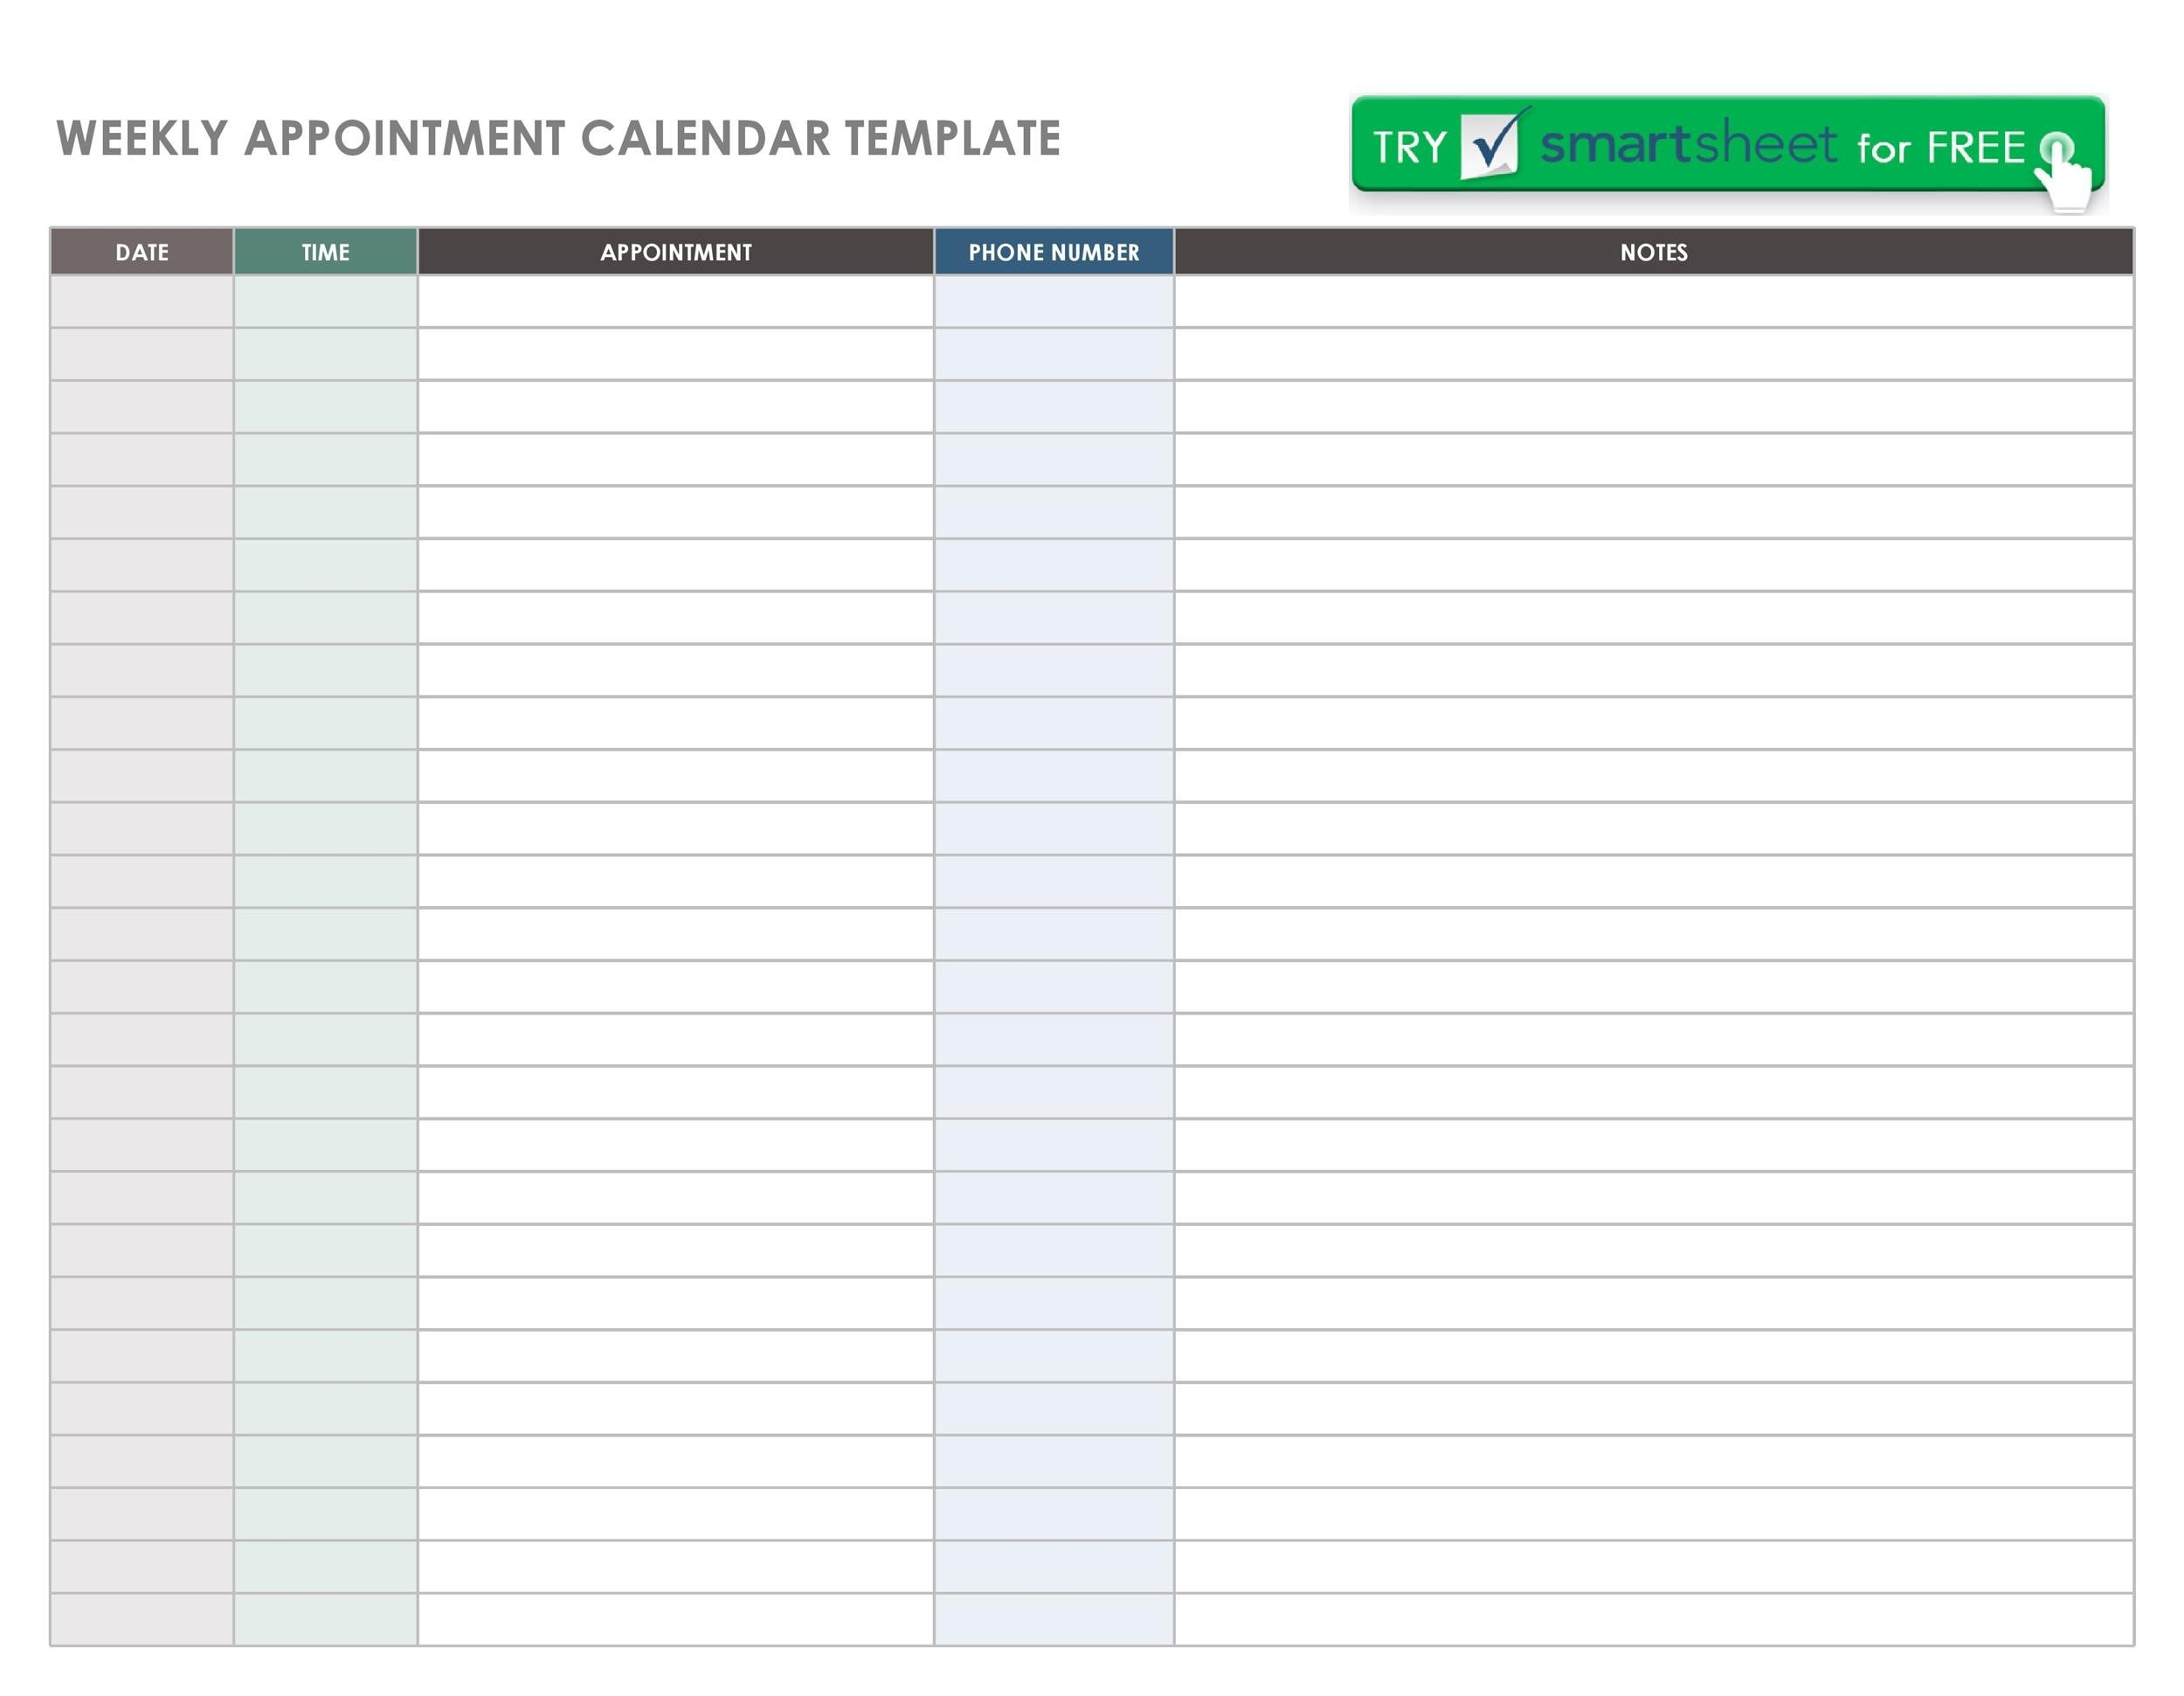 photo relating to Appointment Calendars Printable named 45 Printable Appointment Routine Templates [ Appointment